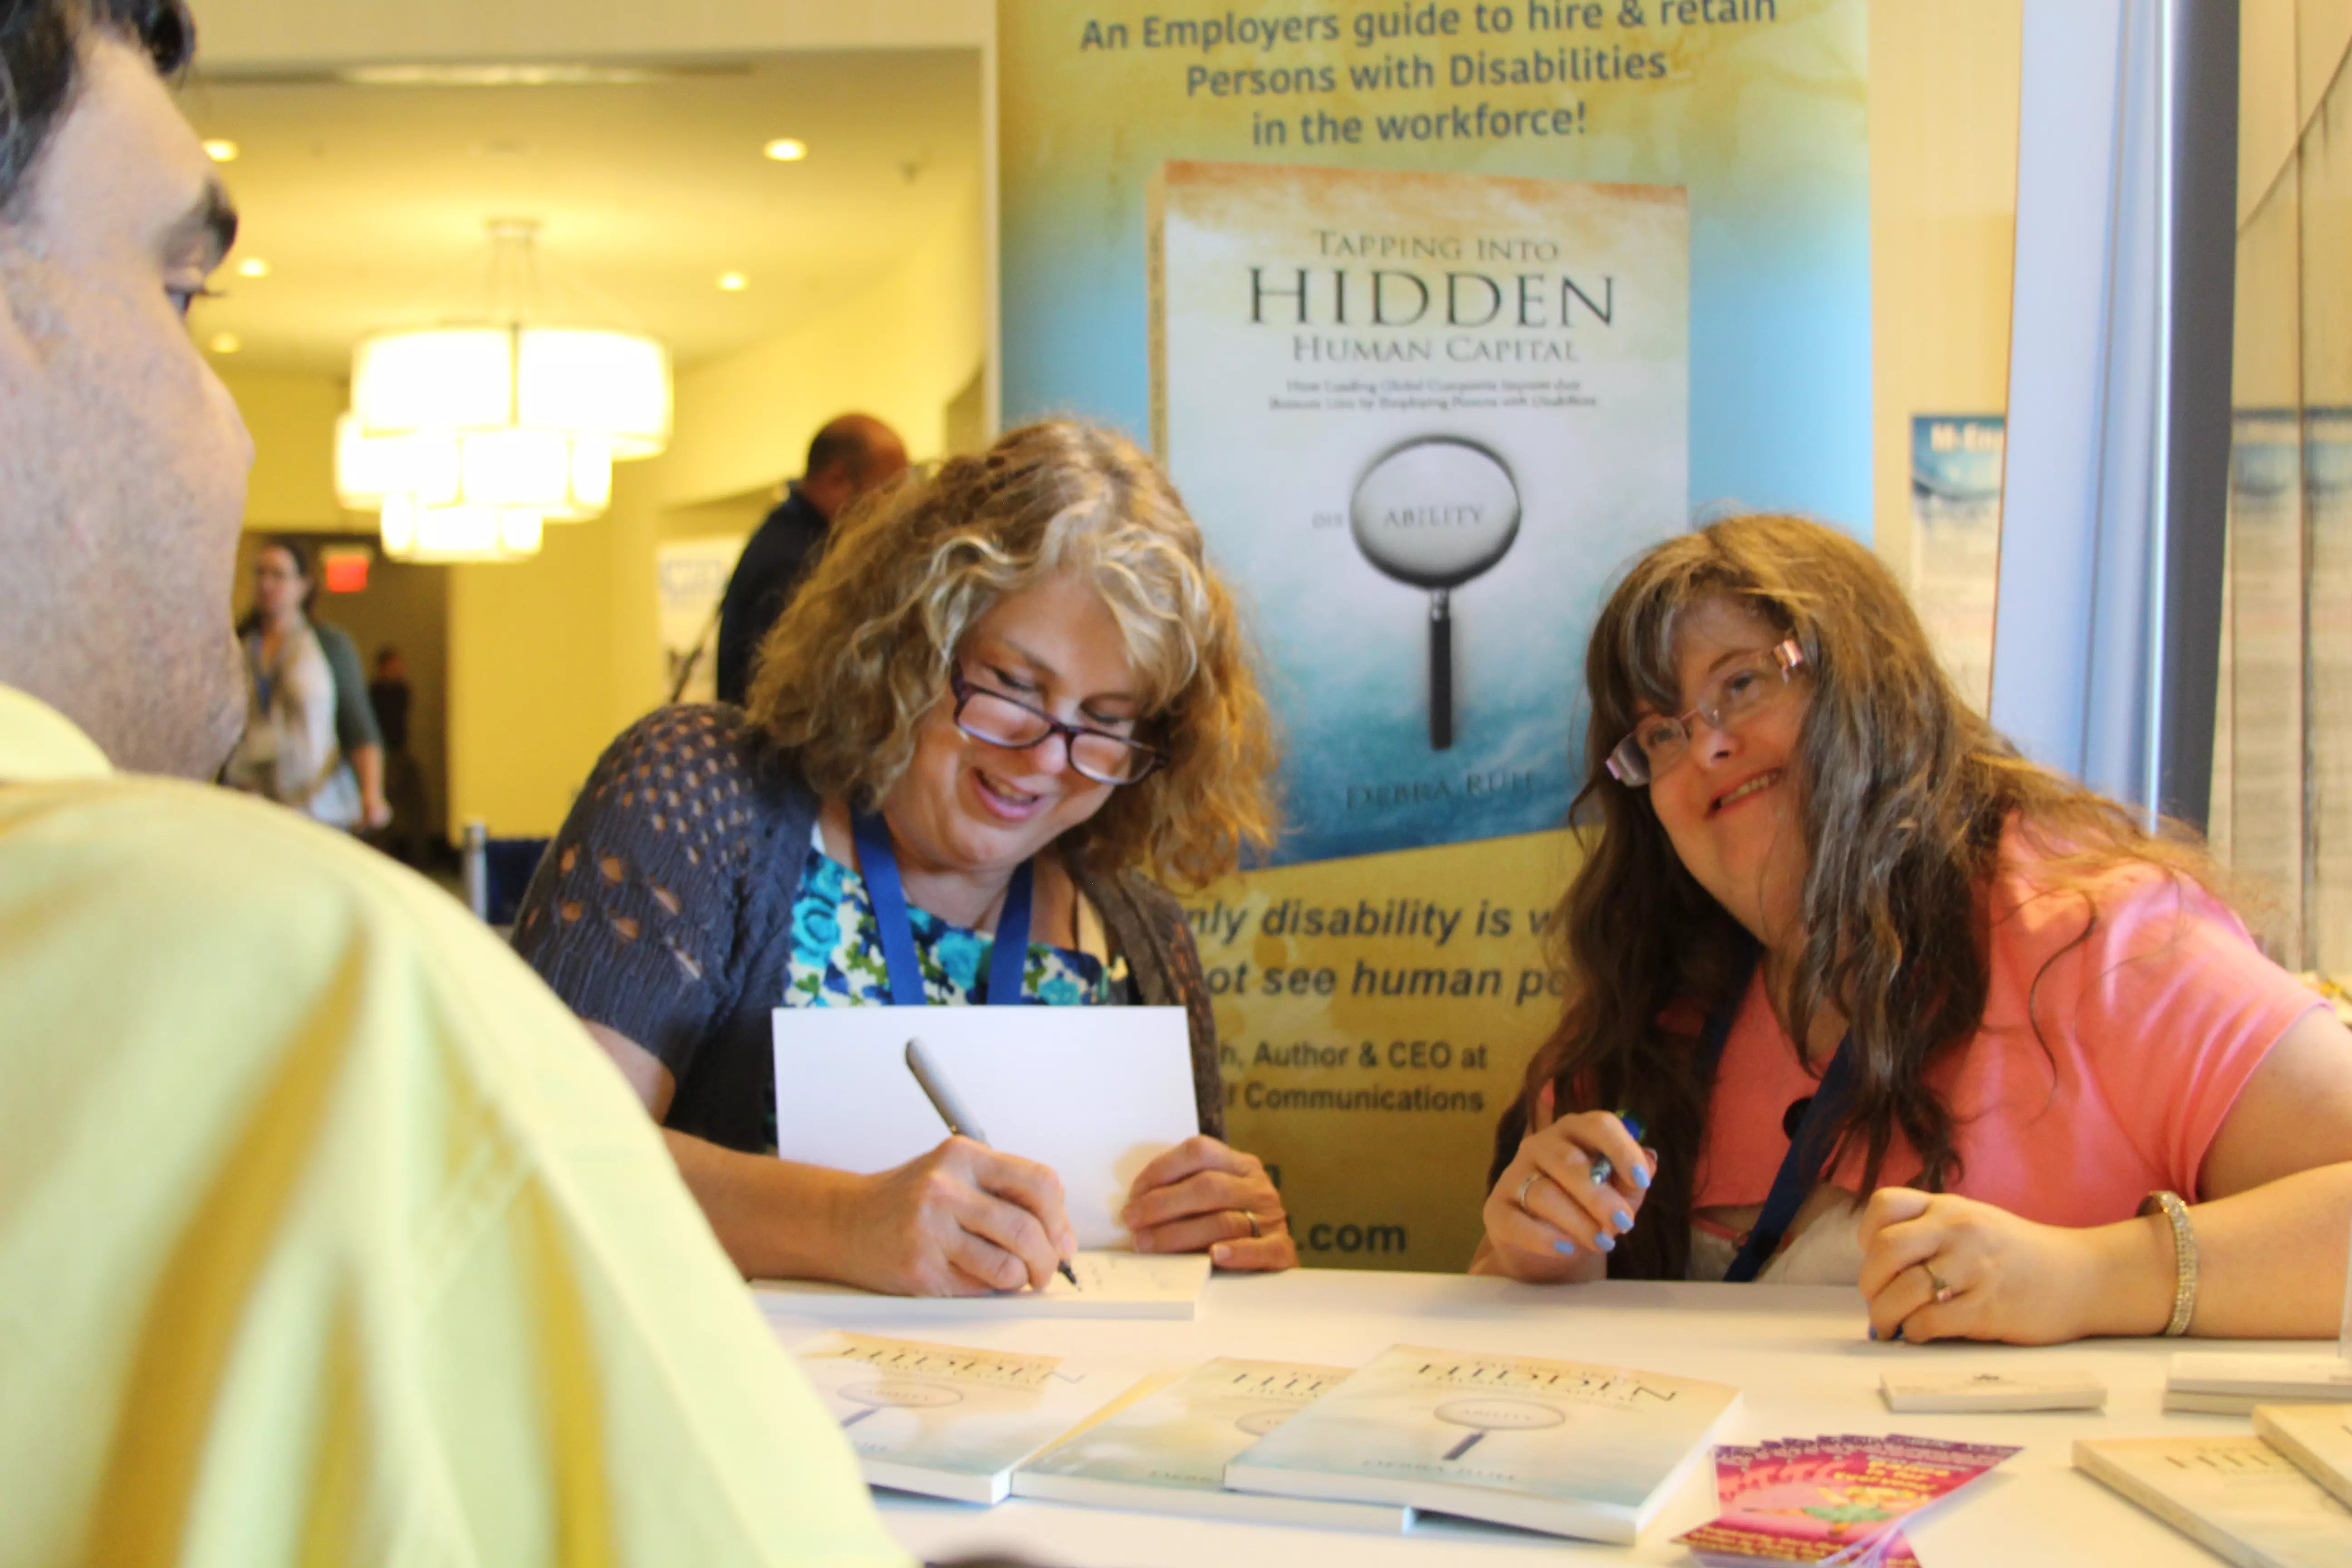 Debra Ruh (L) and daughter, Sara (R) are all smiles while Debra signs her book for a fan — published by G3ict.